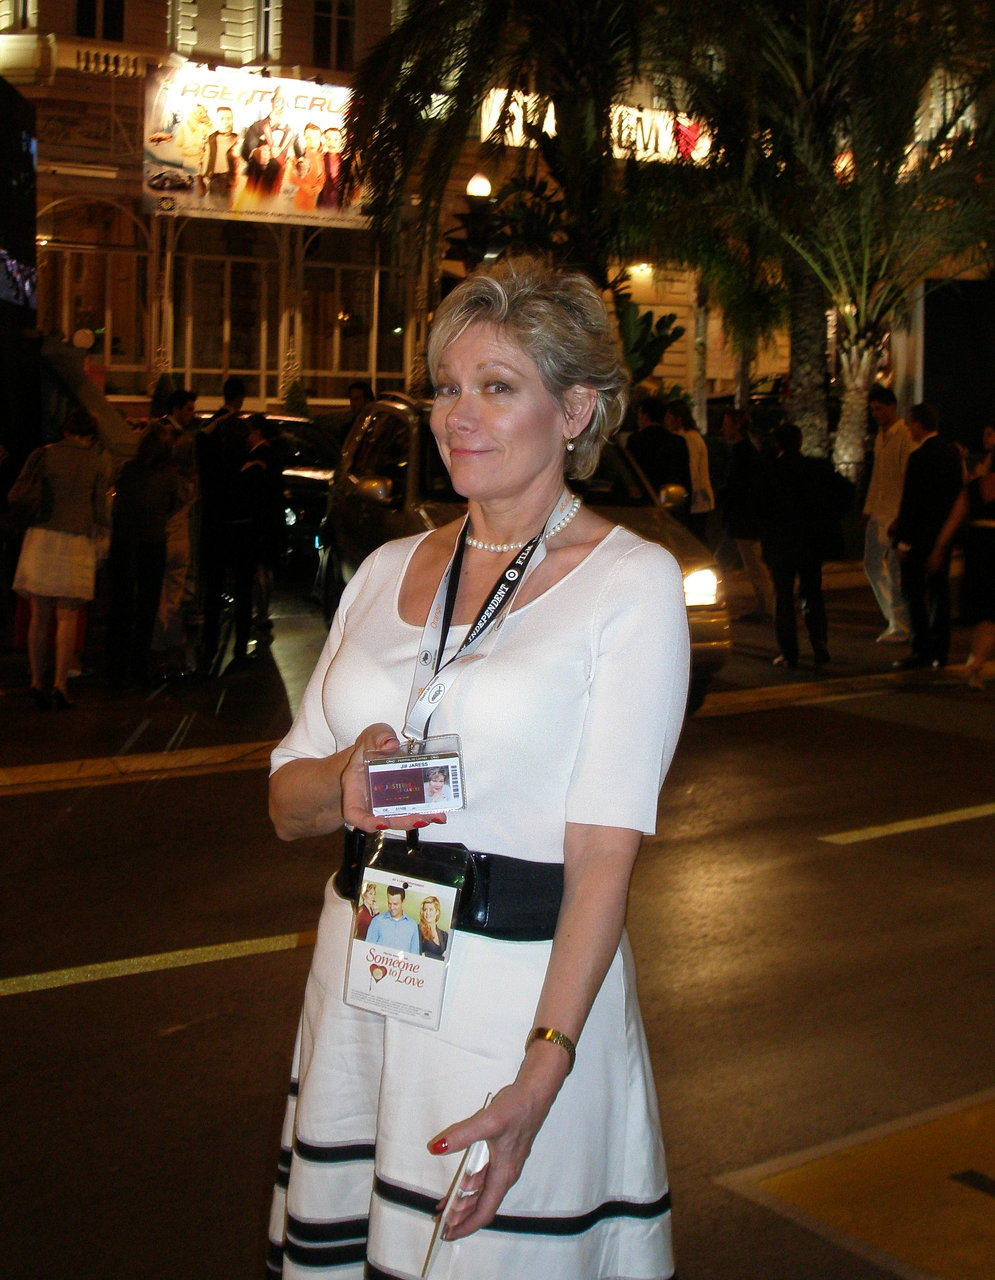 Jill+in+front+of+Carlton+Hotel++proudly+displaying+her+Cannes+Film+Festival+Pass